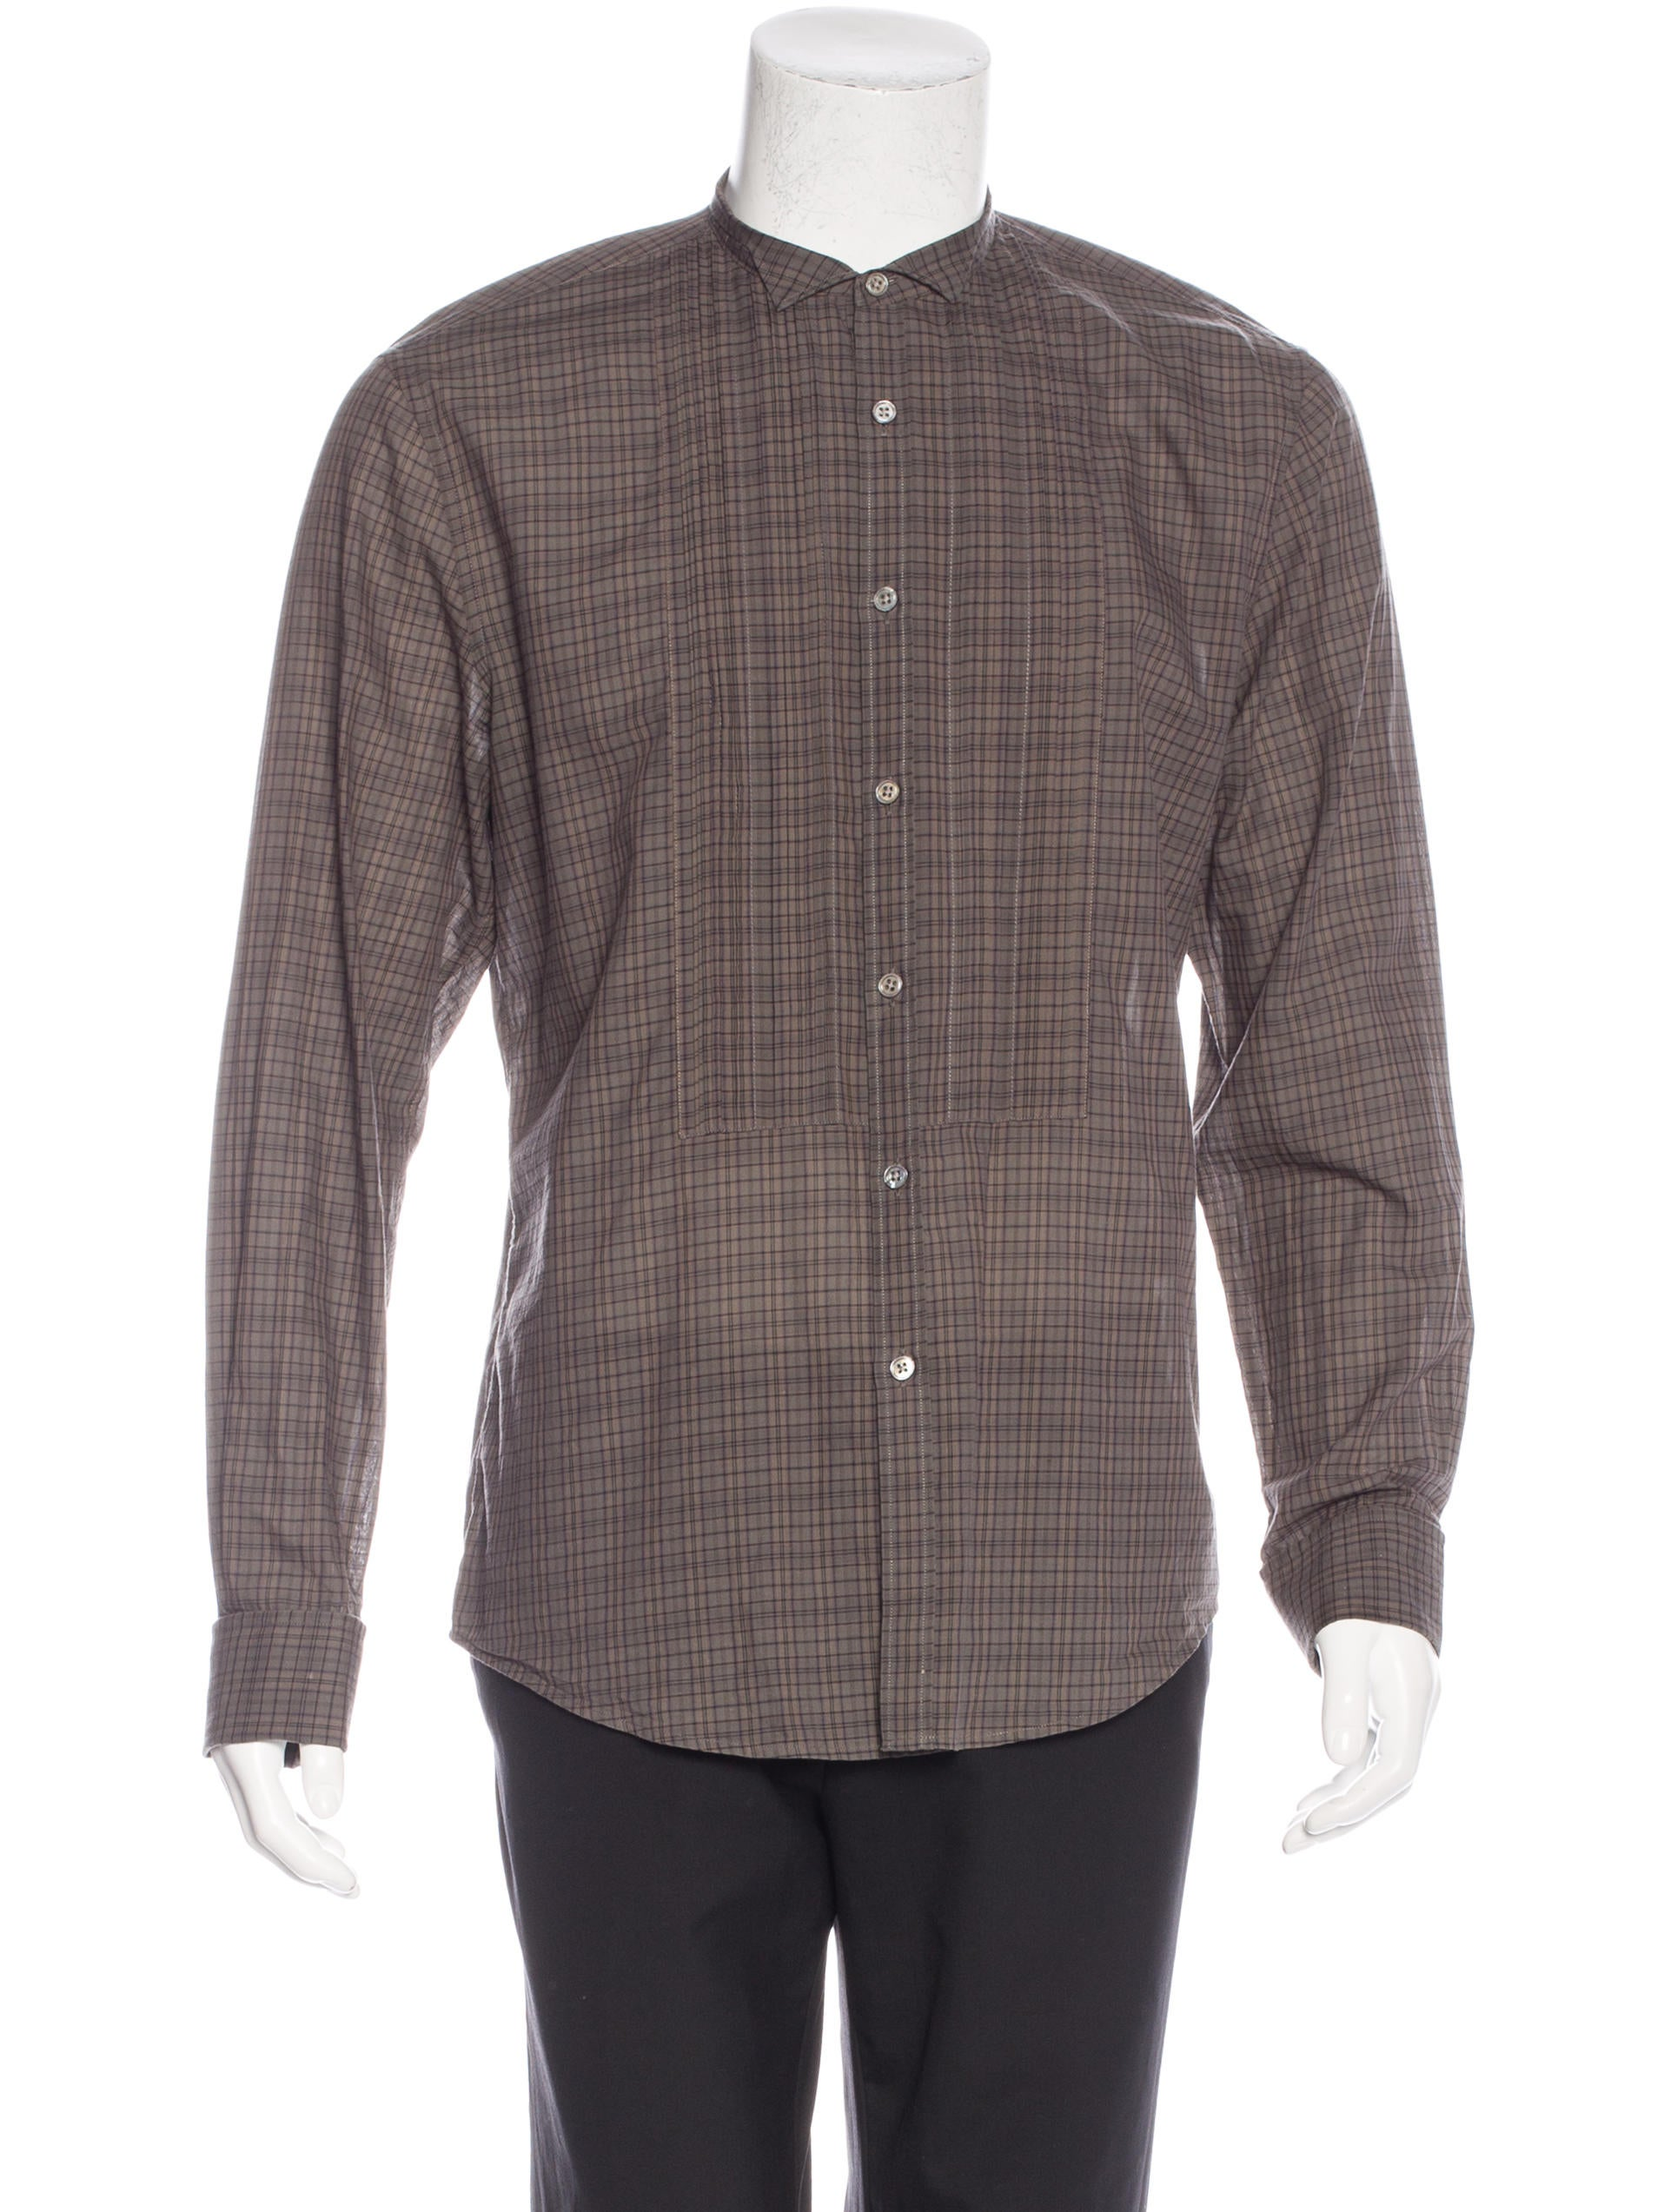 John varvatos pleated french cuff shirt clothing for What is a french cuff shirt